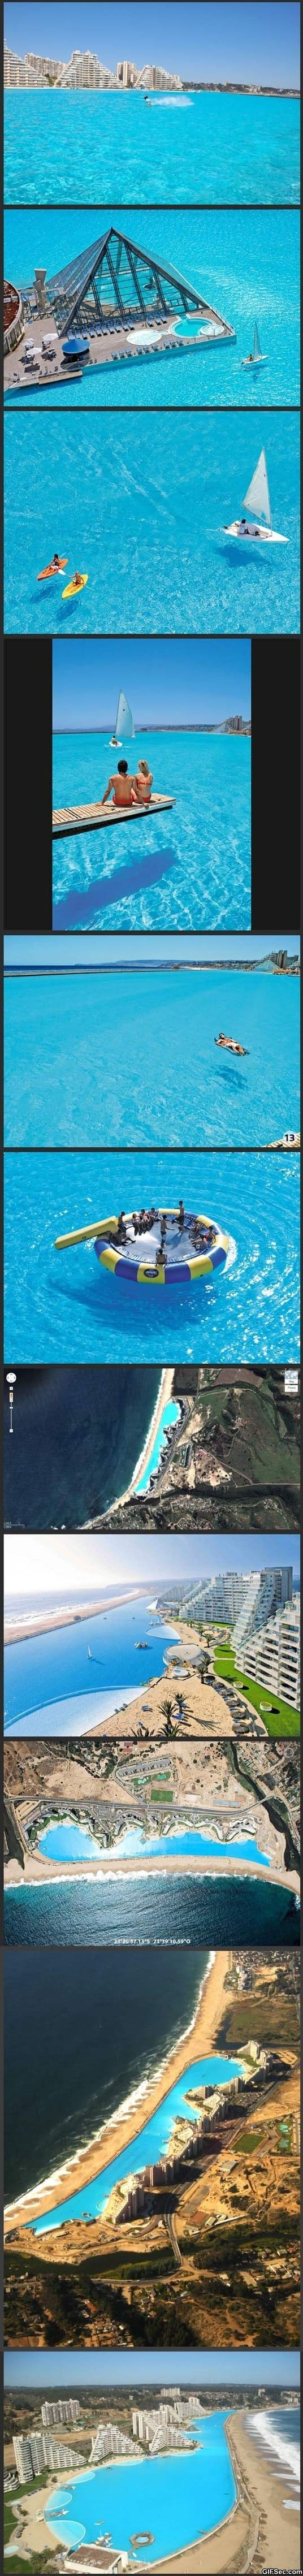 the-largest-swimming-pool-in-the-world